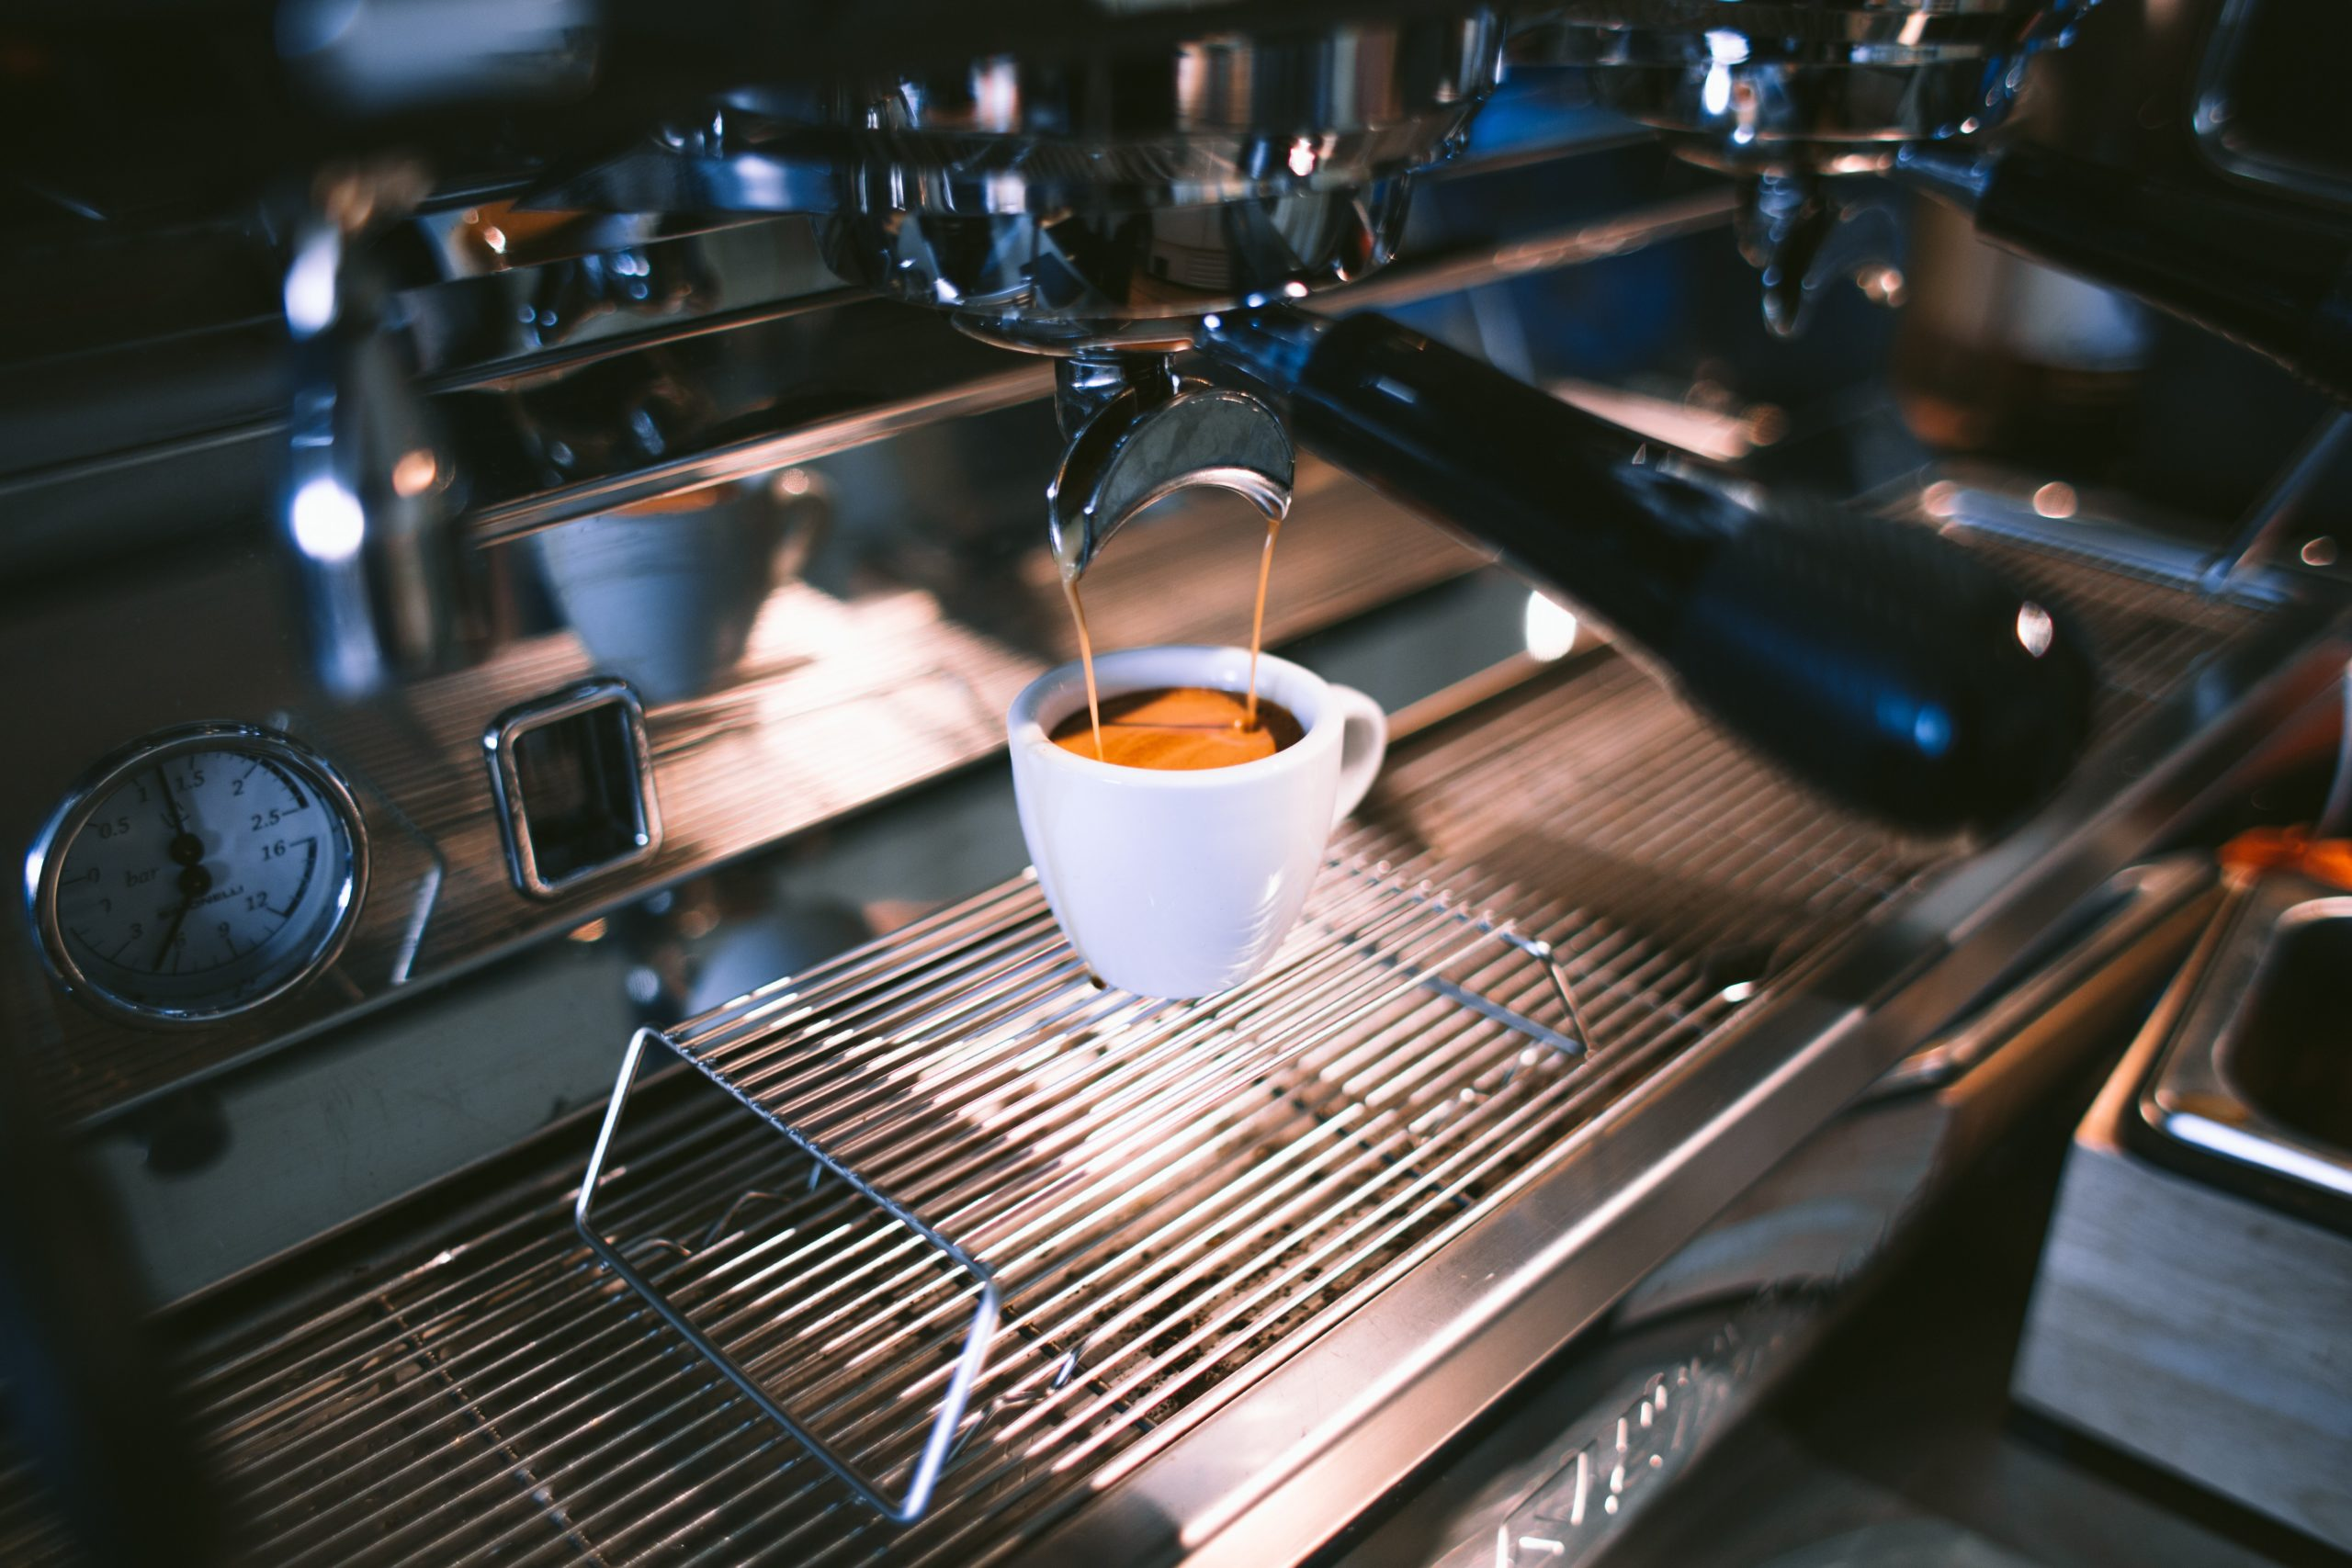 espresso being extracted from an espresso machine